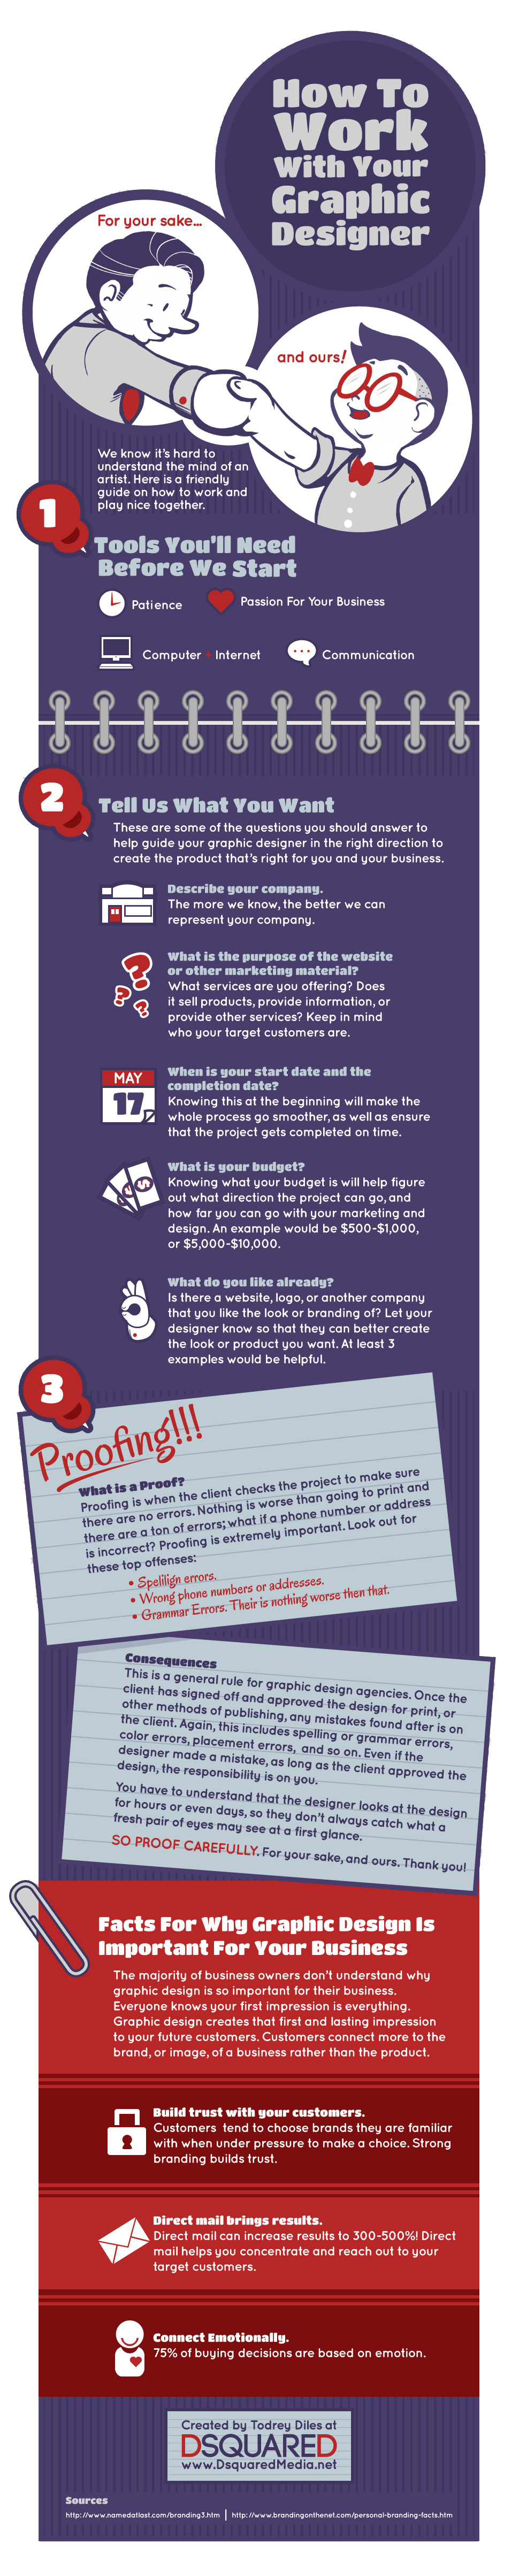 How to work w/ your graphic designer![INFOGRAPHIC]